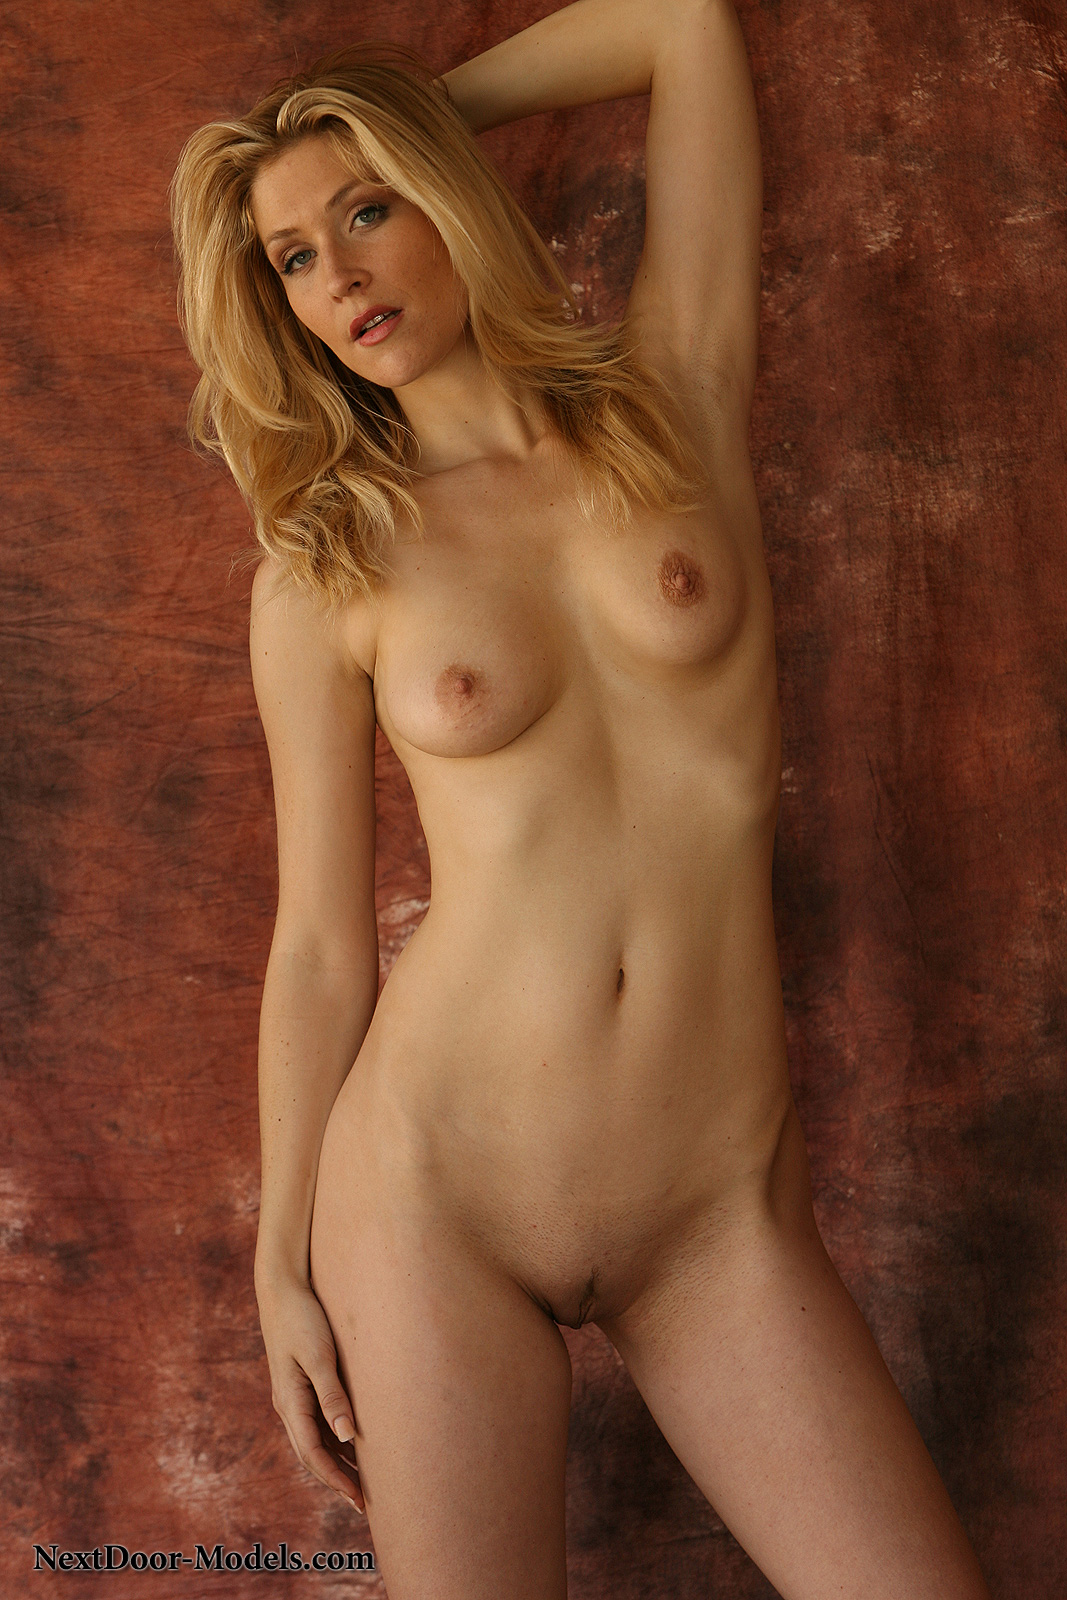 from the neck down naked pictire